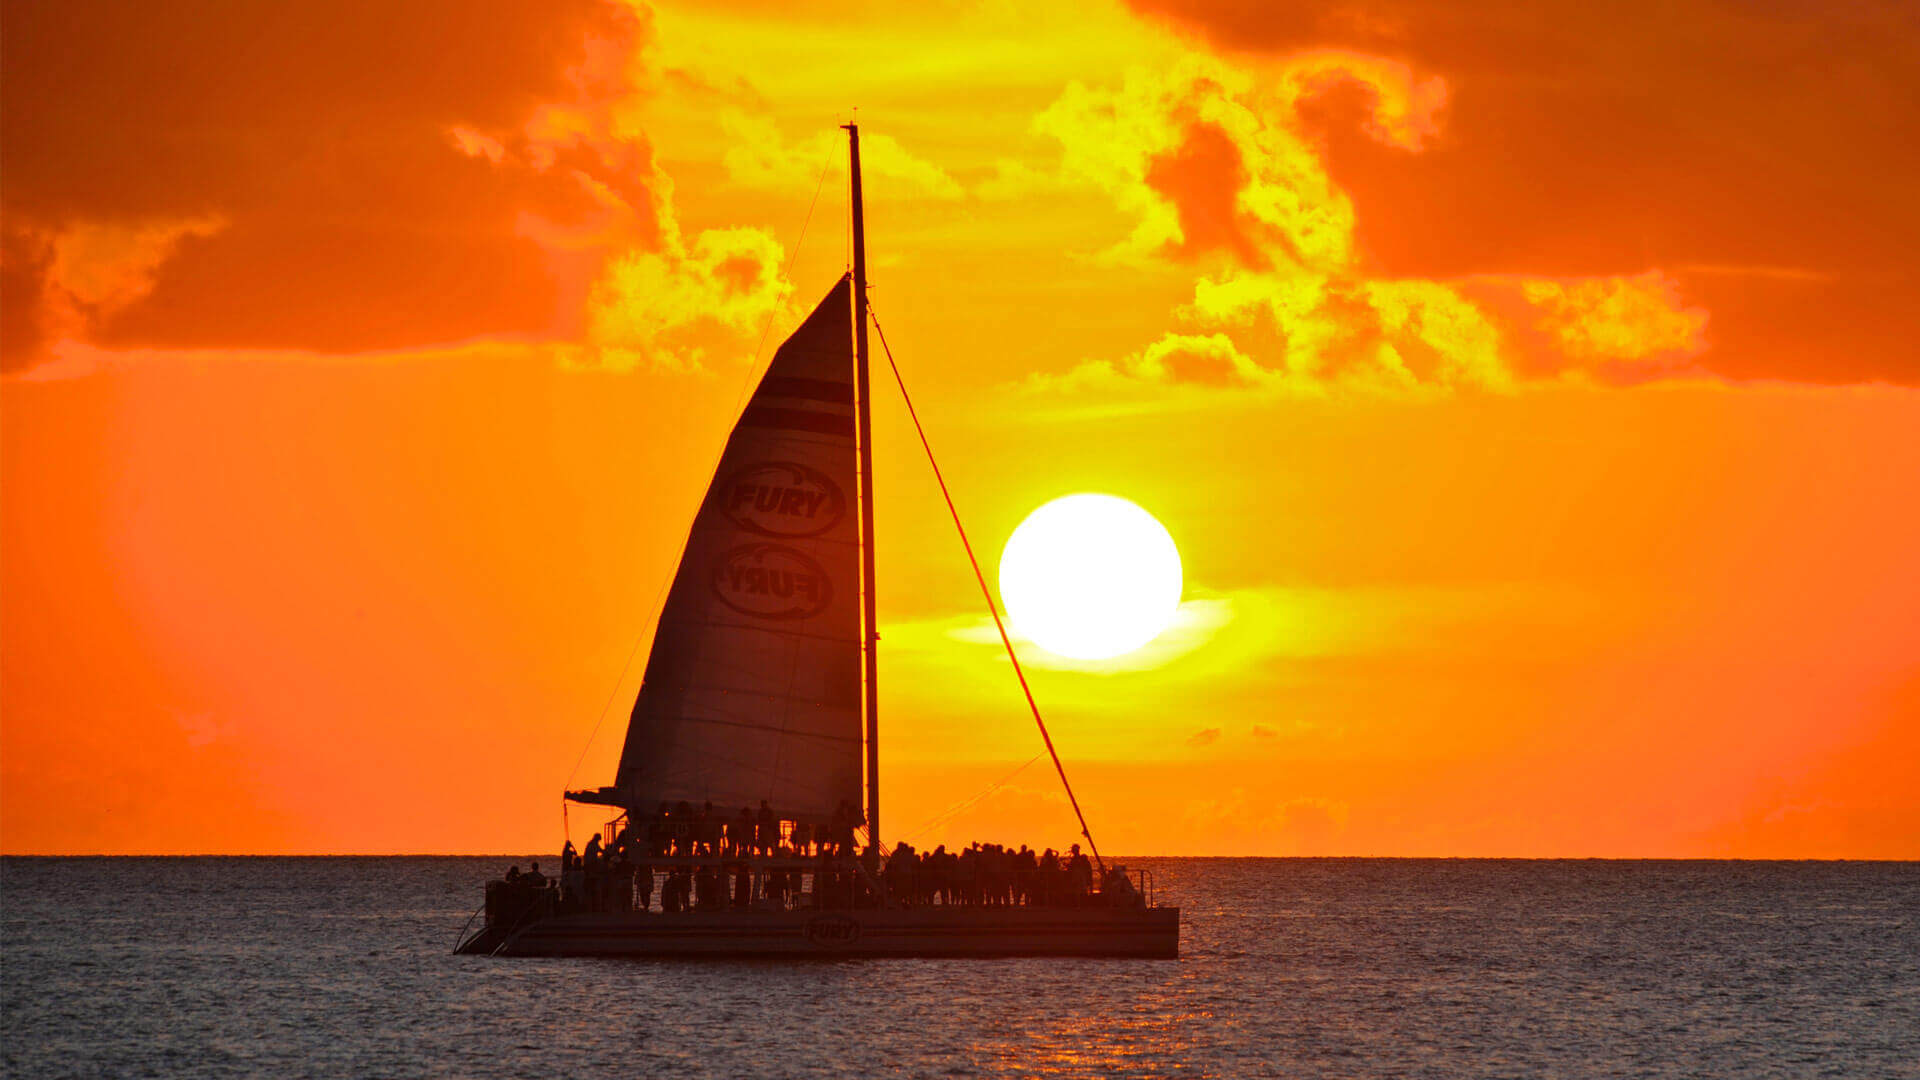 Fury Commotion on the Ocean catamaran with sunset